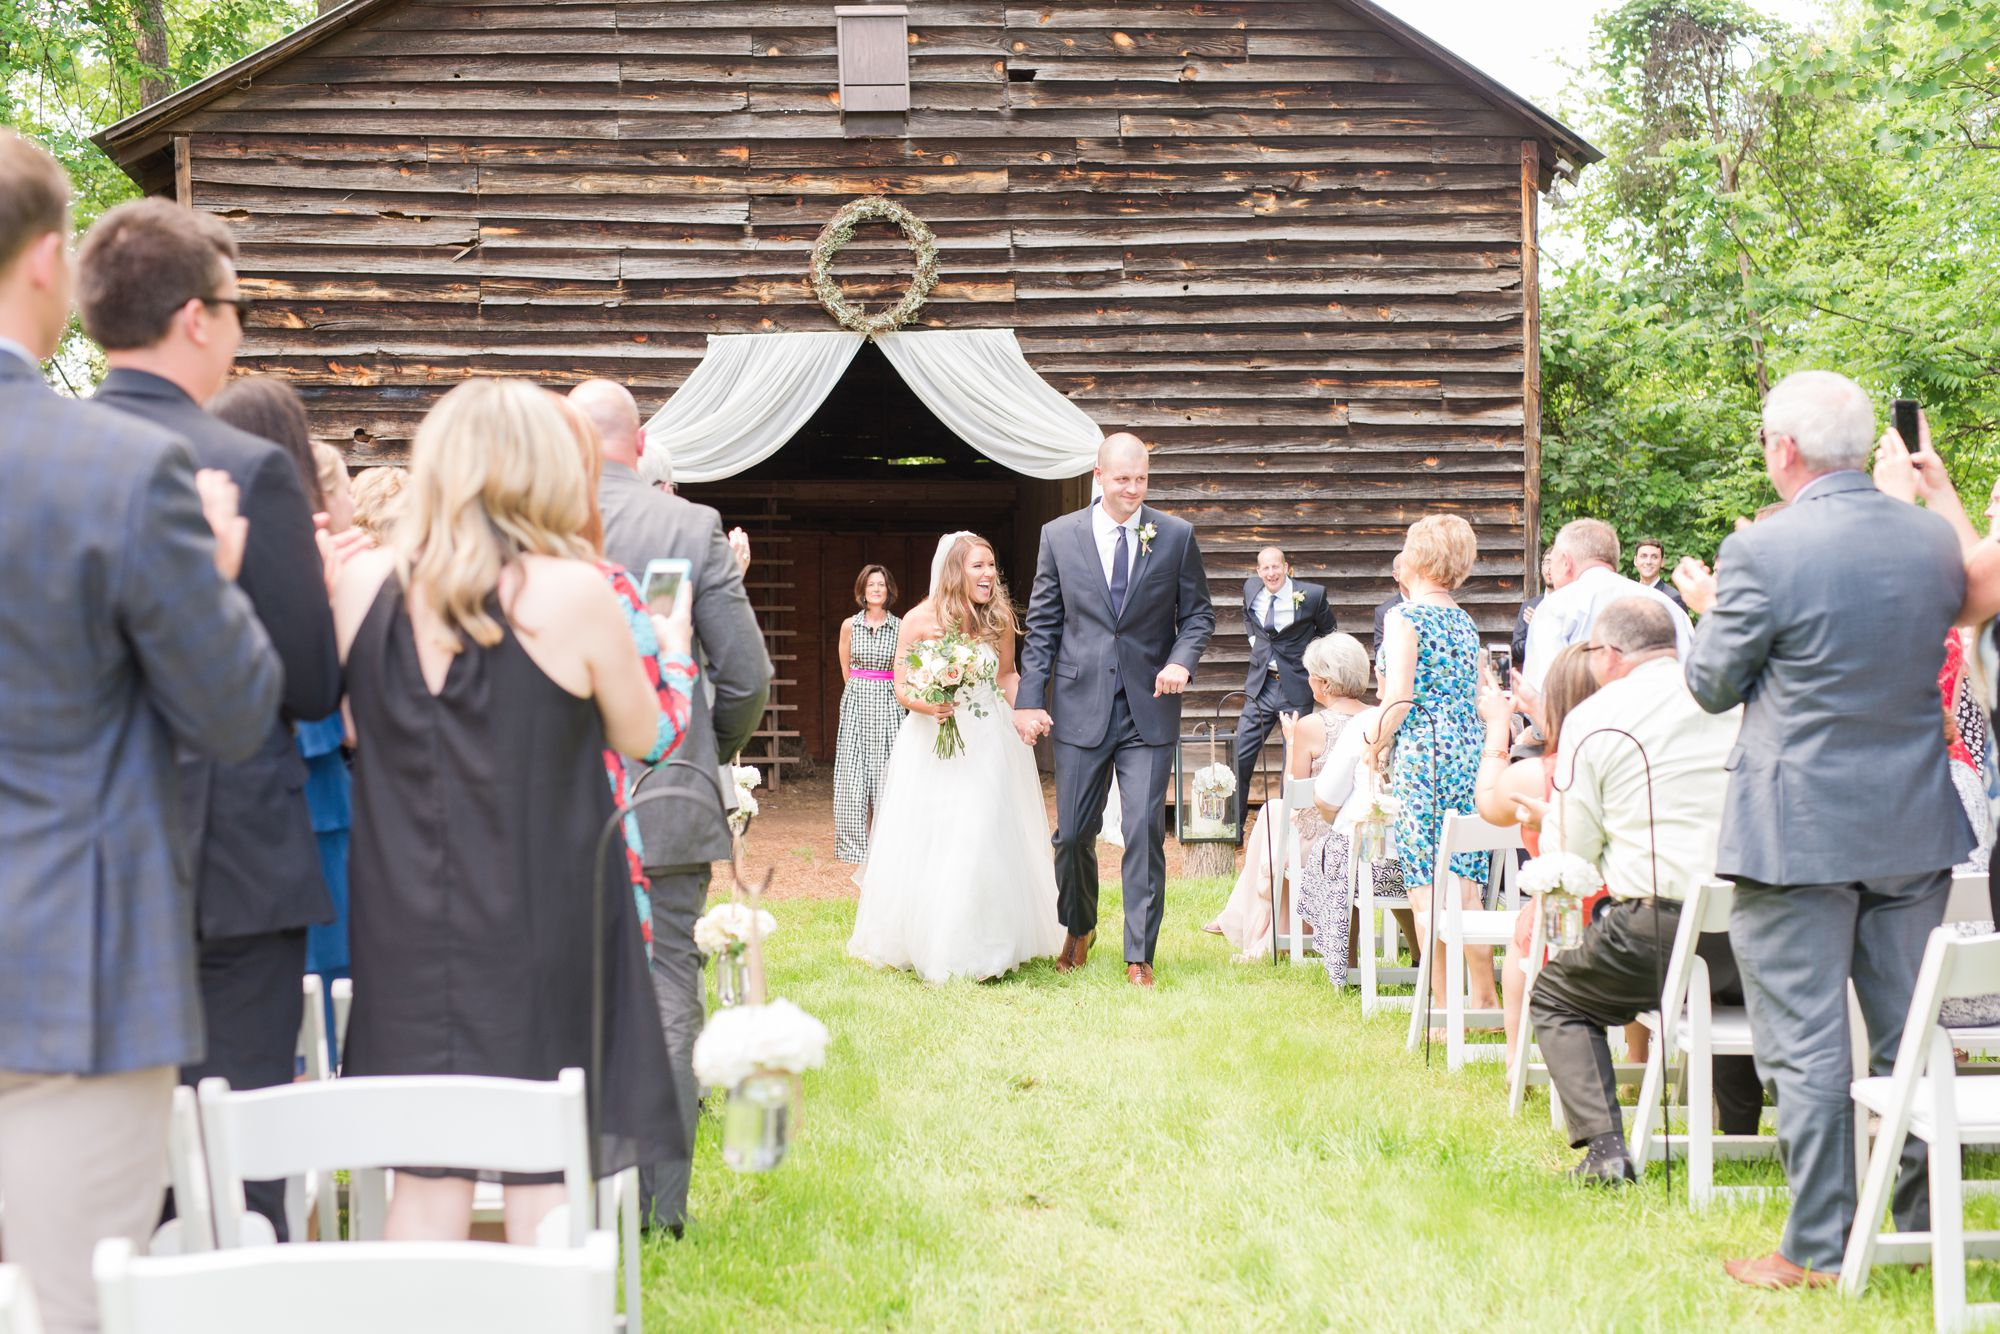 beaver-dam-house-davidson-nc-wedding-photos 60